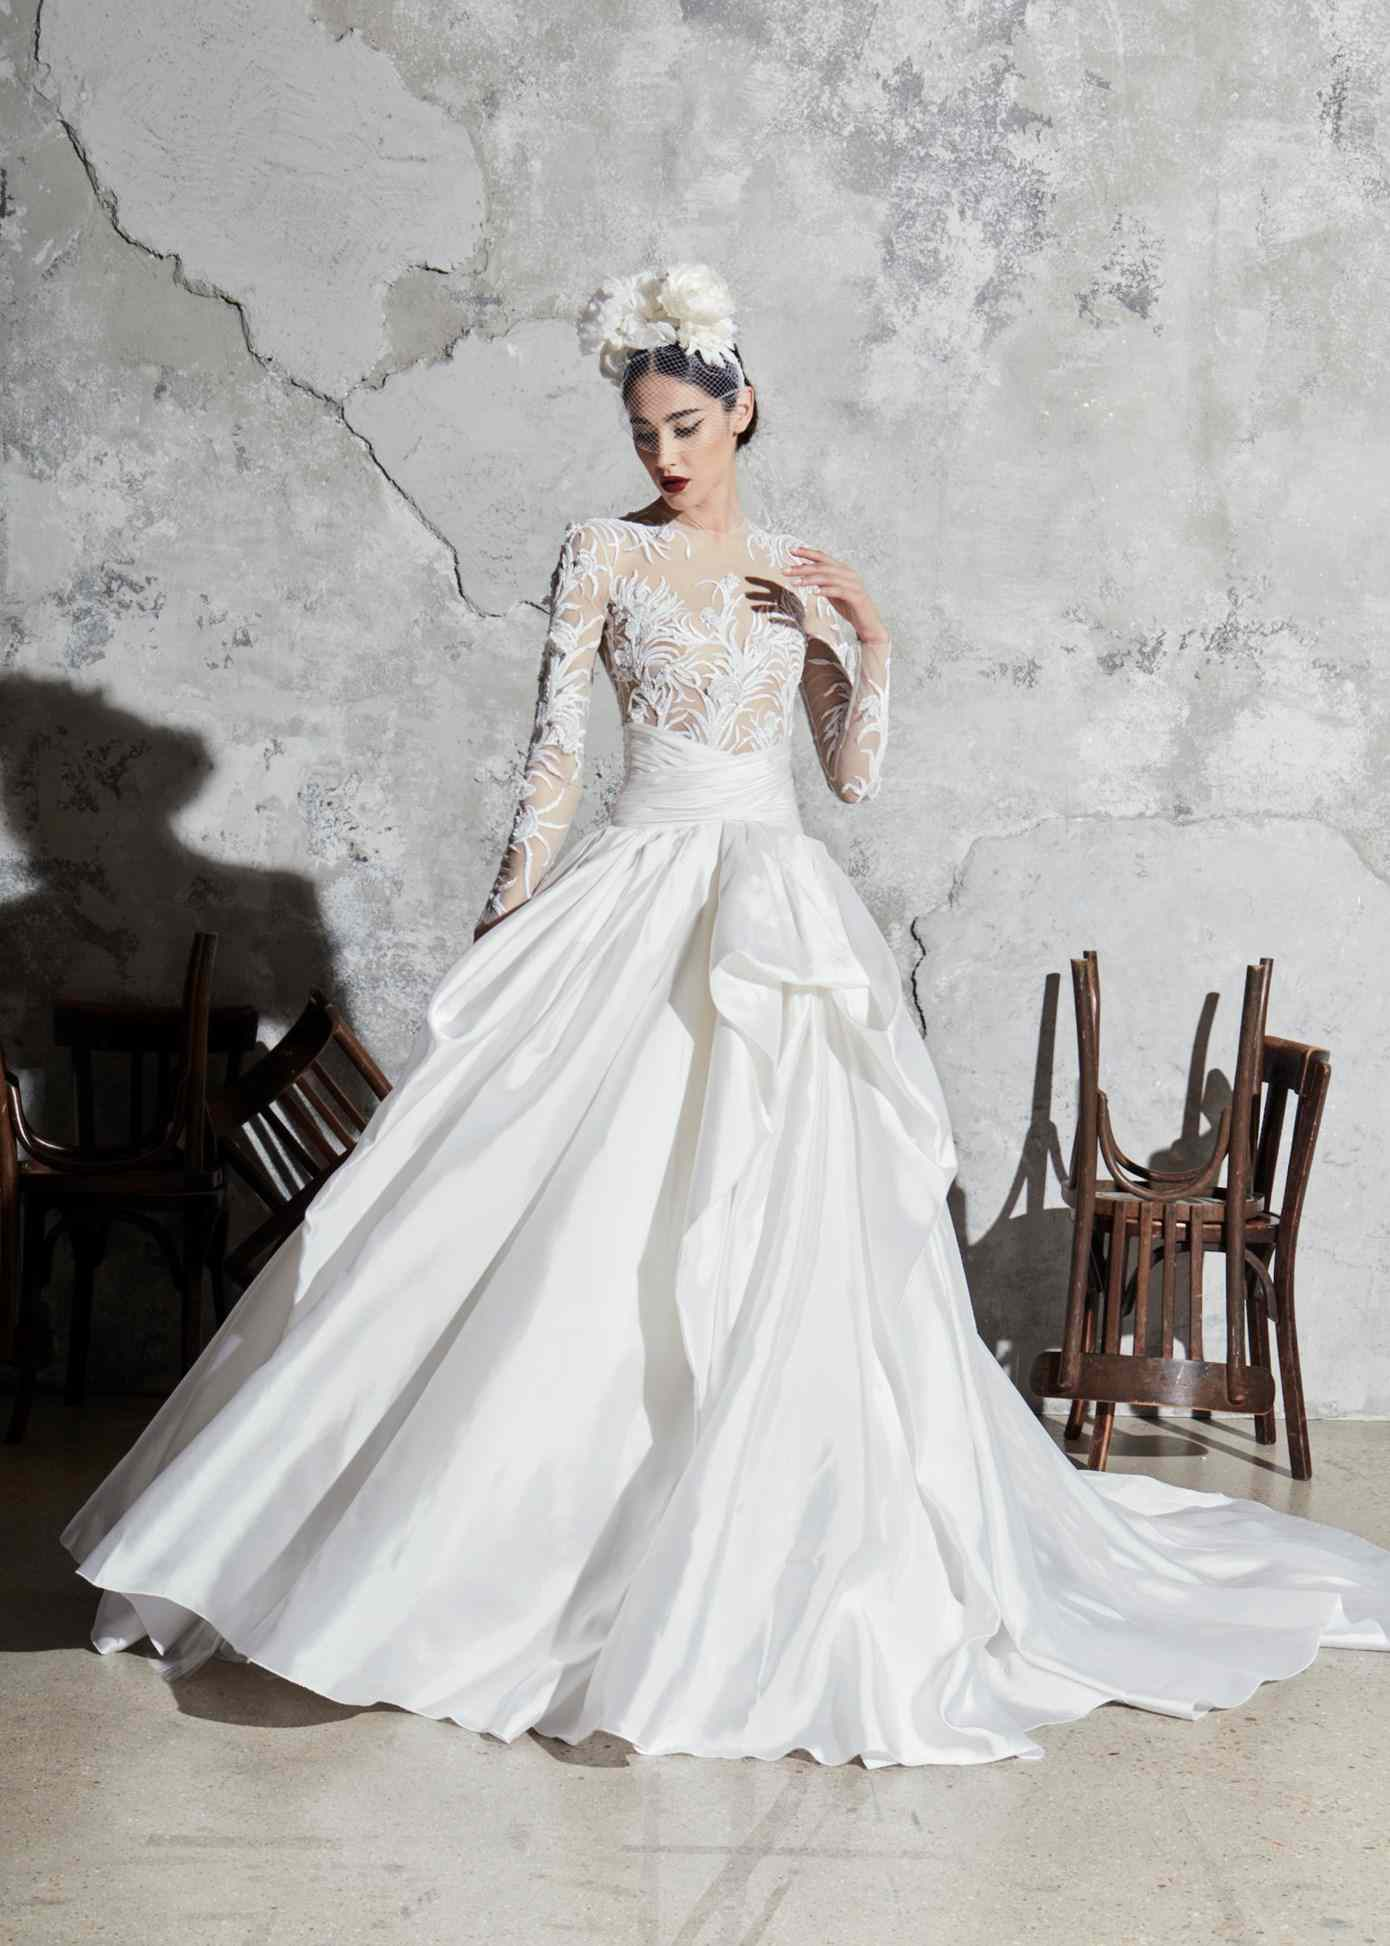 Model in a ballgown with a long-sleeve embroidered illusion bodice, a draped waistband, and a gathered silk skirt